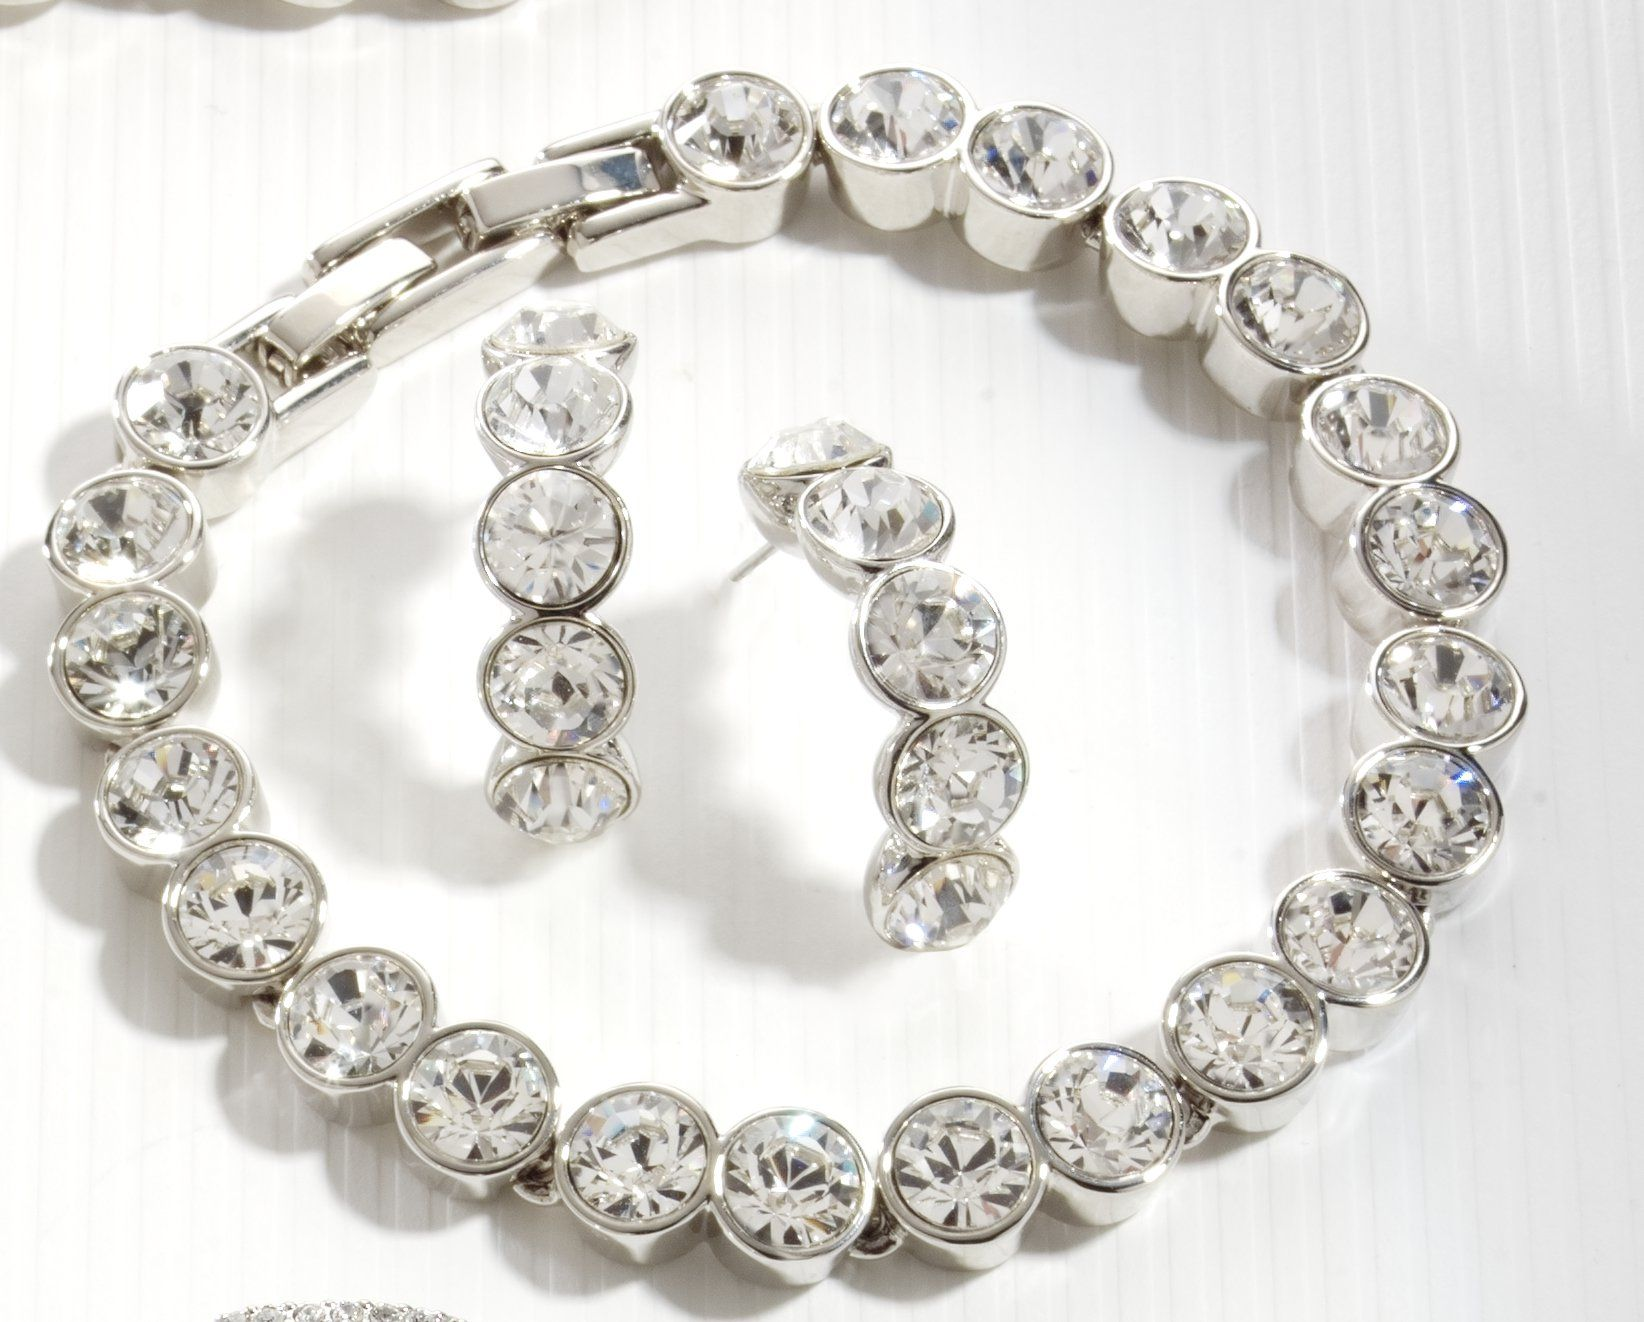 tennis itm myjs crystals wgp wedding gift a bracelet day angelic swarovski with bridal